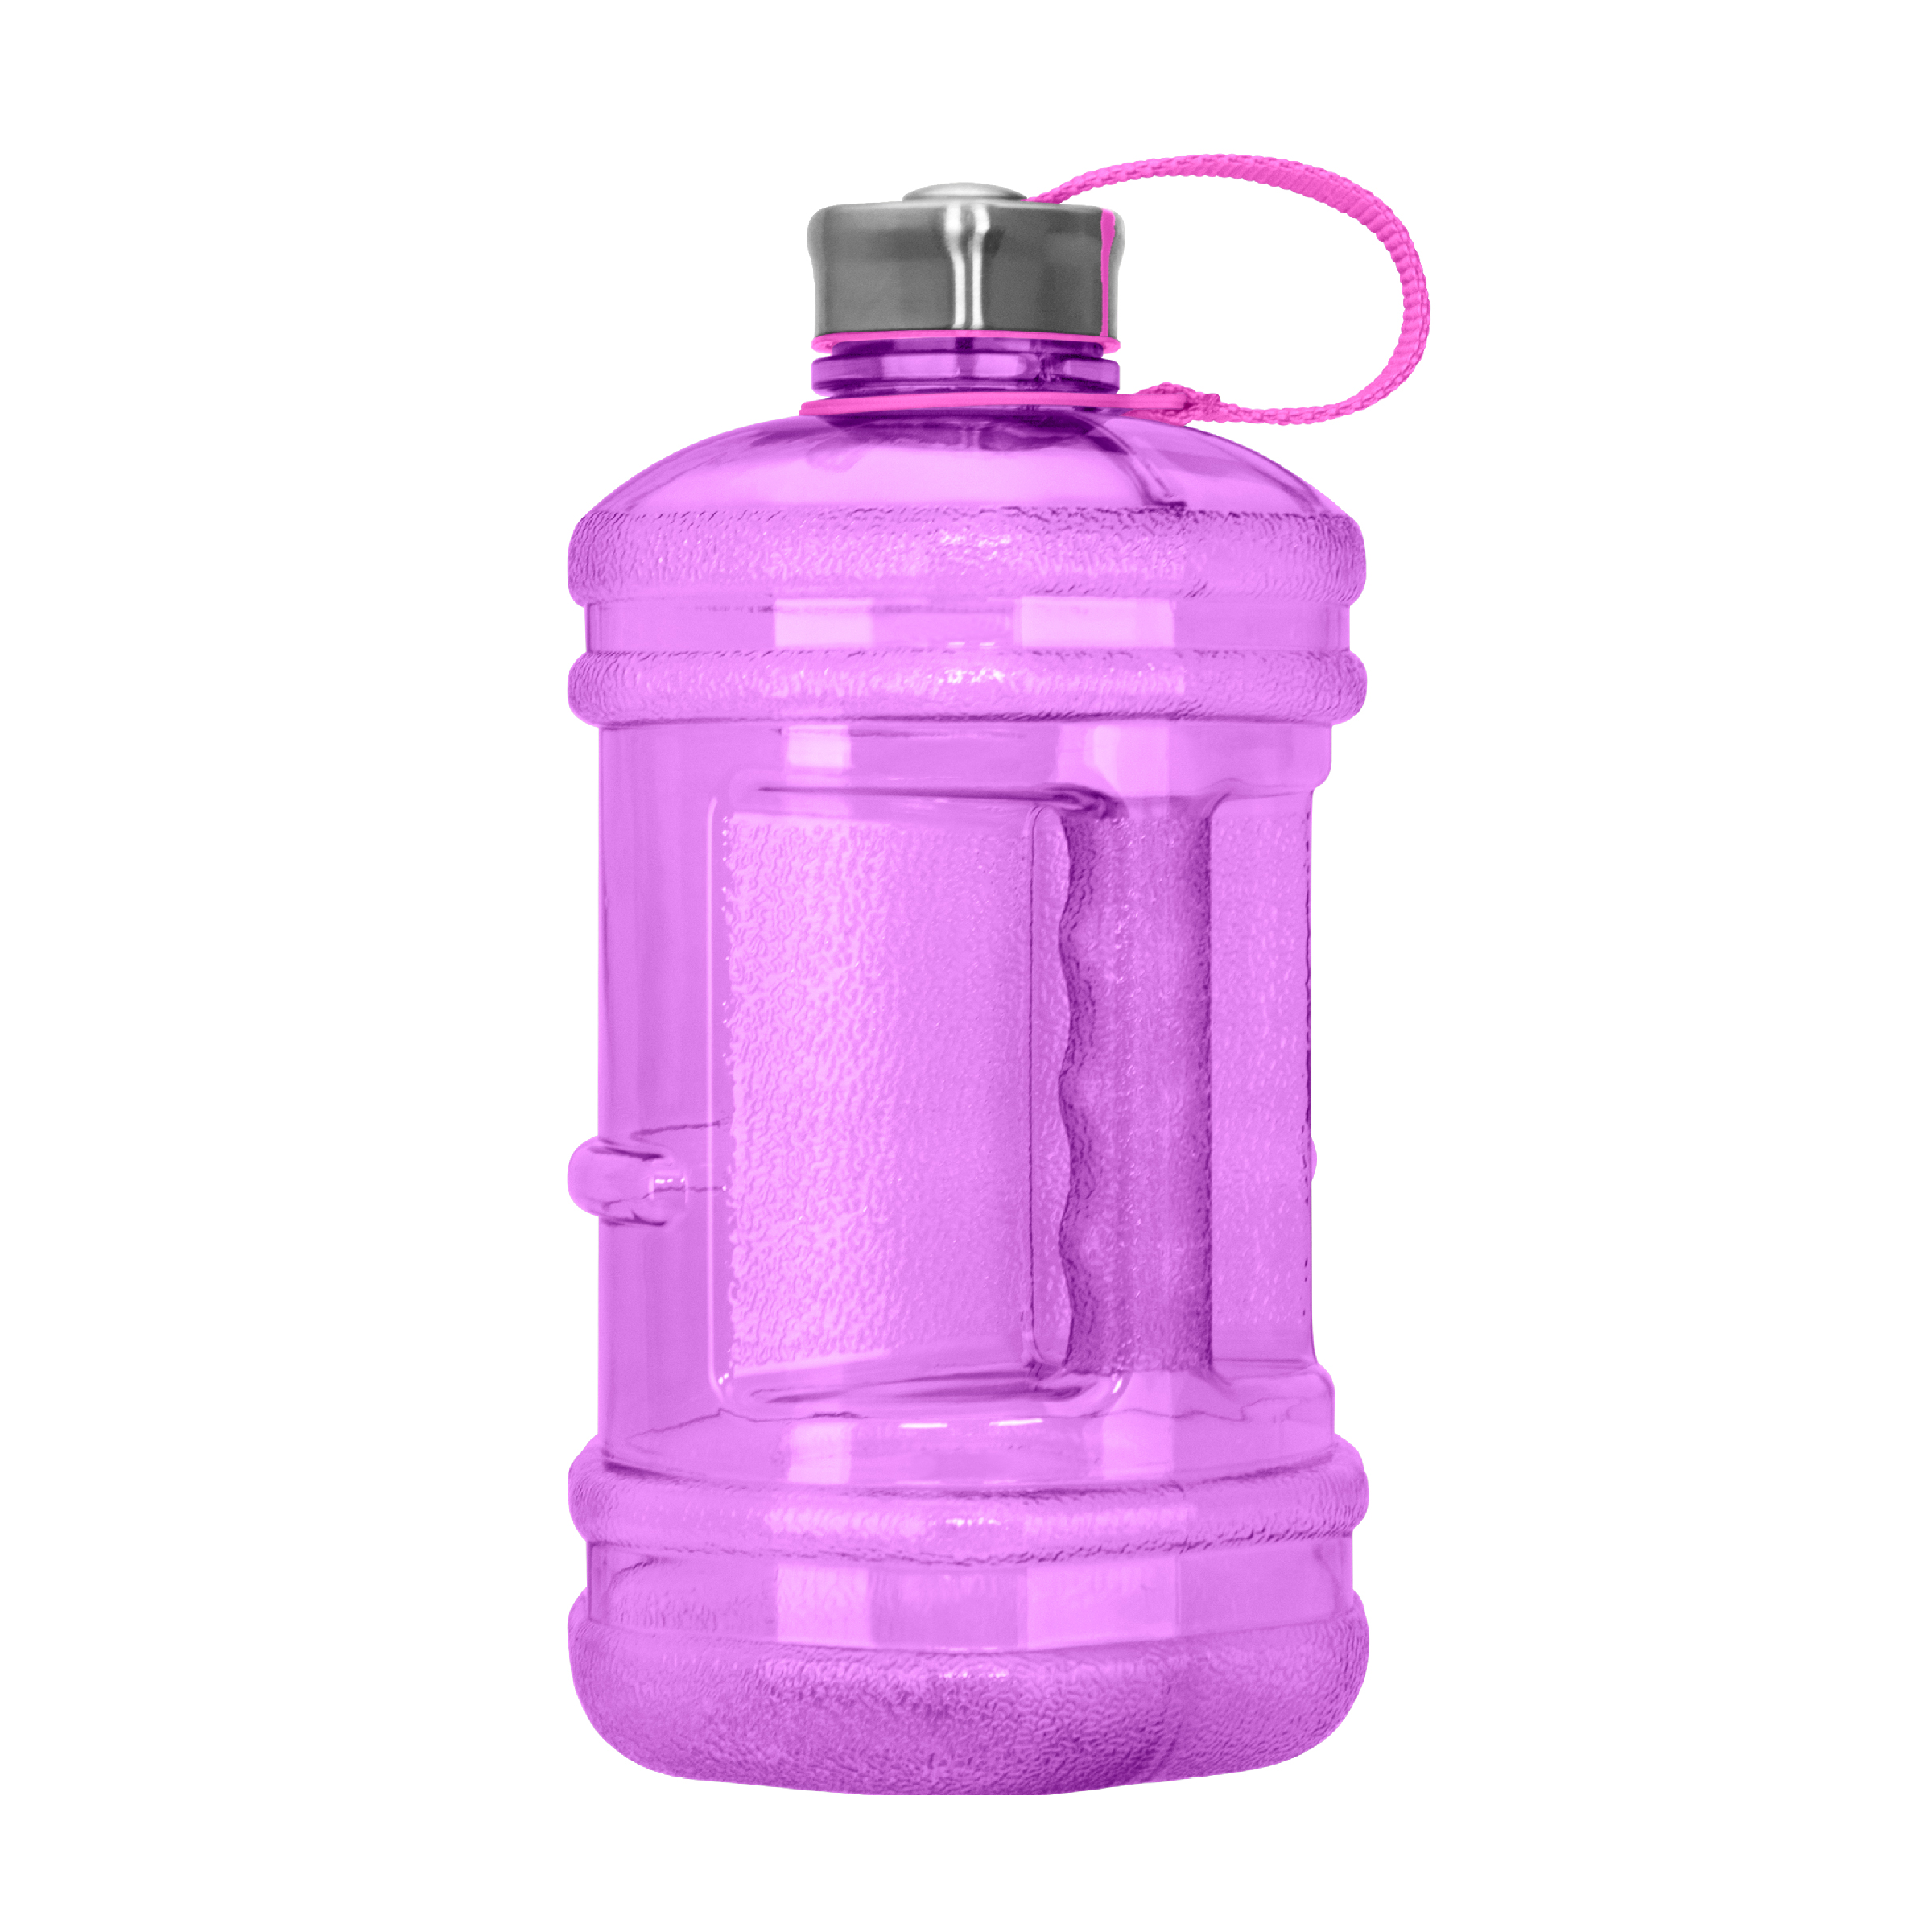 2.3 Liter (77 oz) BPA Free Hexagon Water Bottle w/48mm Steel Cap (Purple)